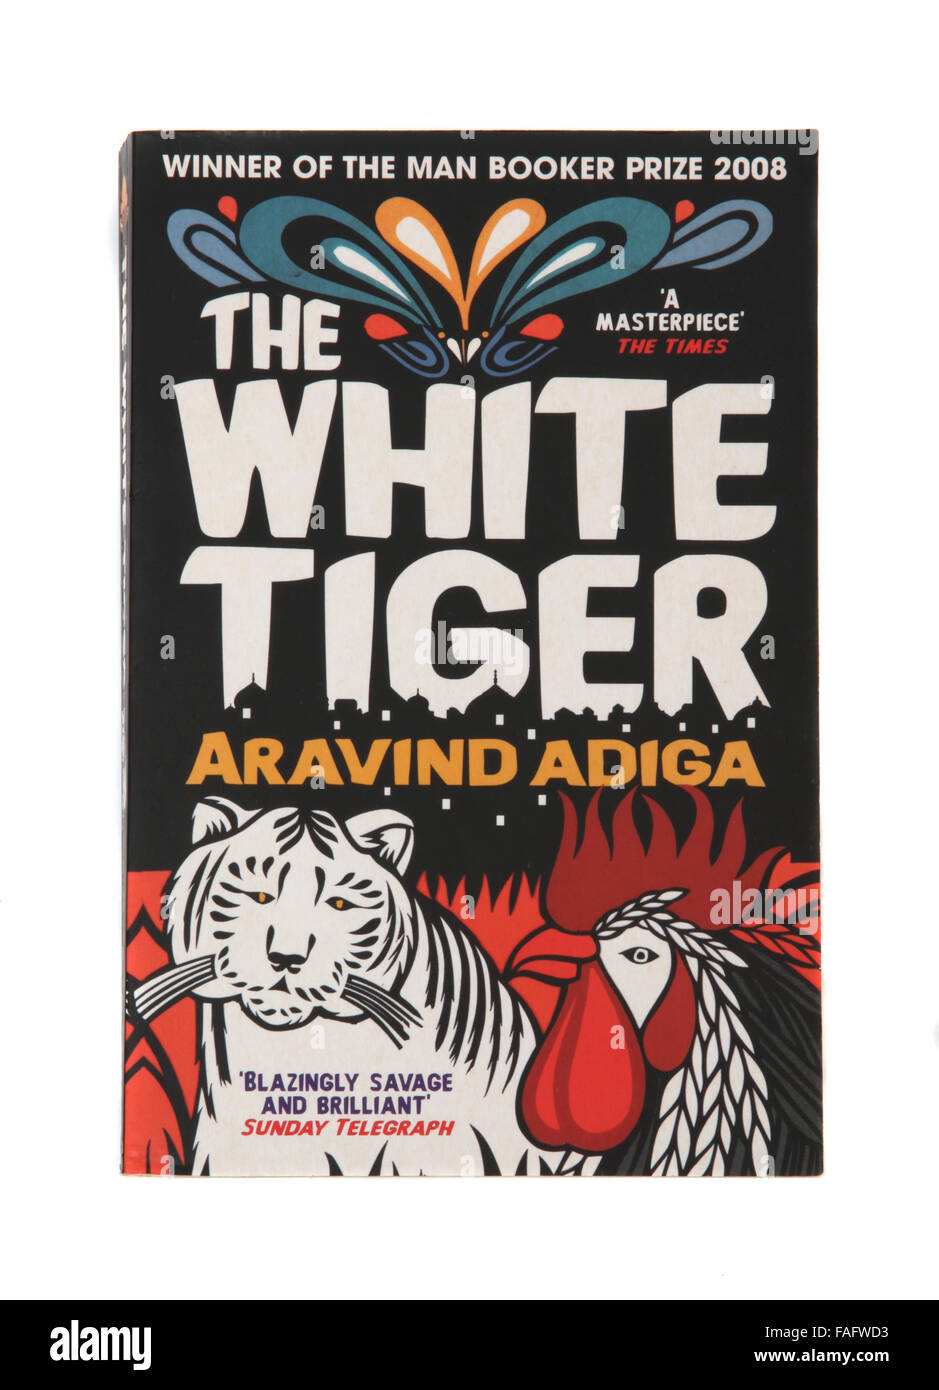 The book - The White Tiger by Aravind Adiga. Winner of The Man Booker Prize 2008 - Stock Image